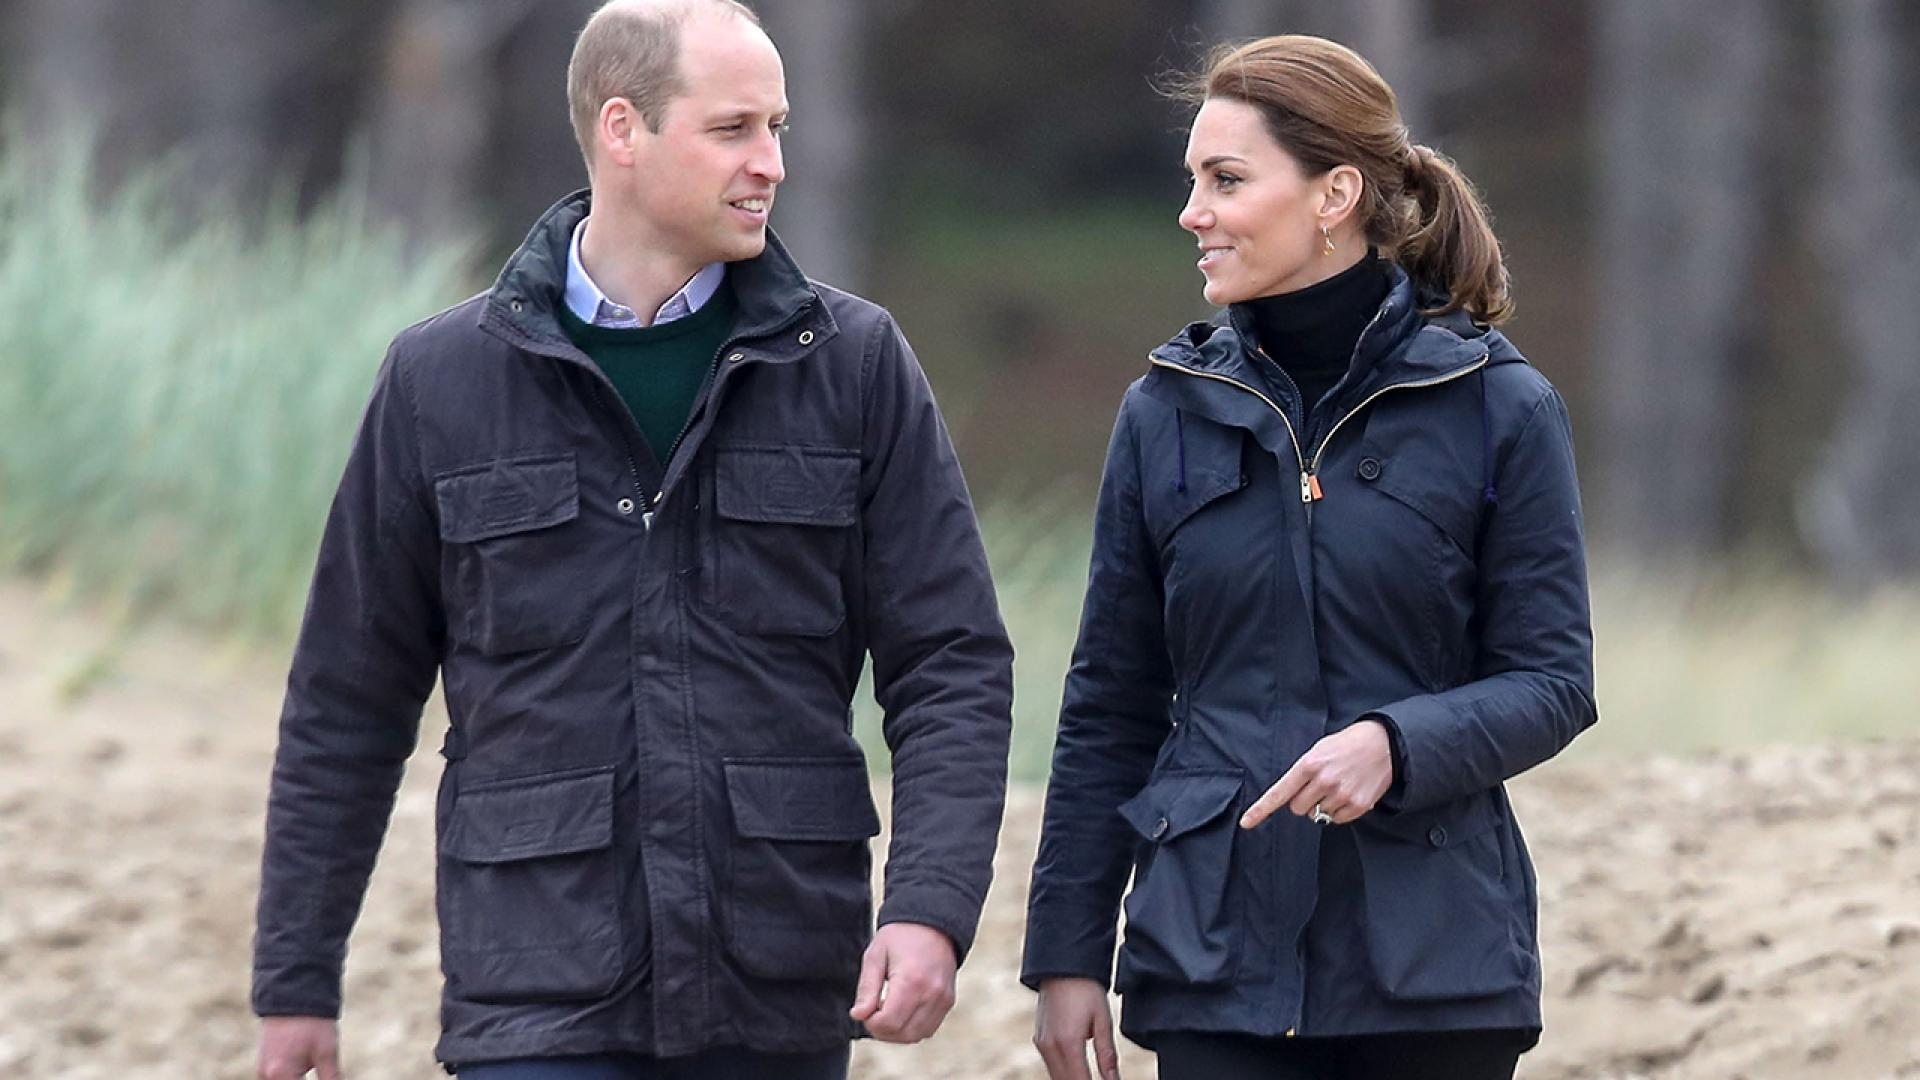 Kate Middleton and Prince William are set to meet their nephew, Archie Harrison Mountbatten-Windsor, for the first time on Tuesday.